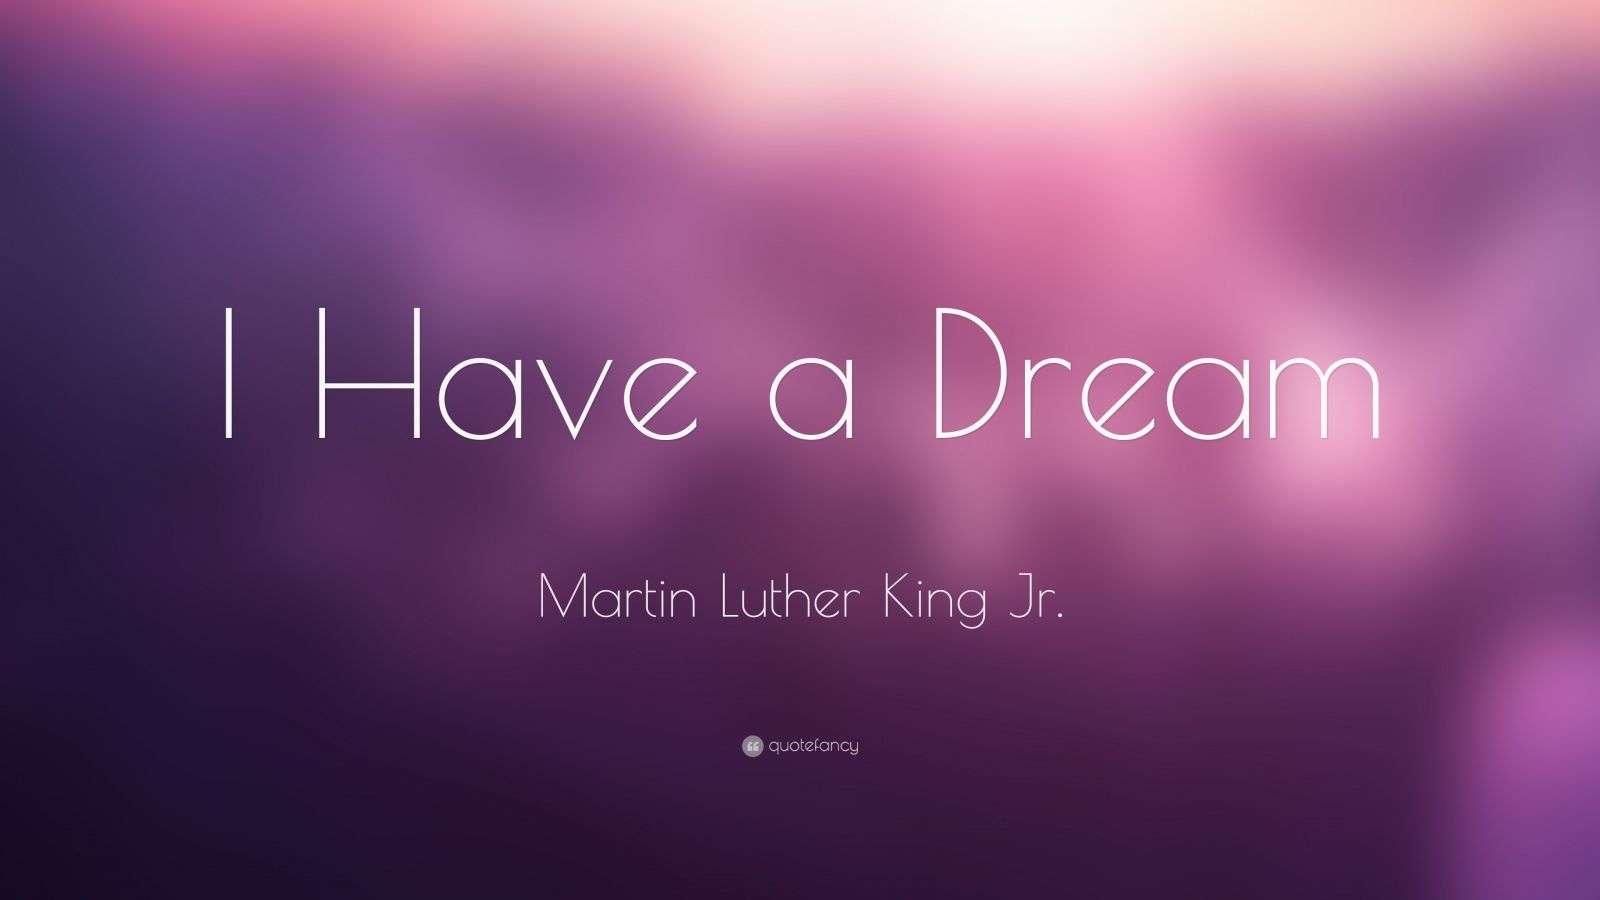 martin luther king jr.: i have a dream essay Martin luther king jr had a dream a dream of freedom, of complete brother hood, the true american dream, the dream of full equality king was one of history's most influential leaders of racial justice.